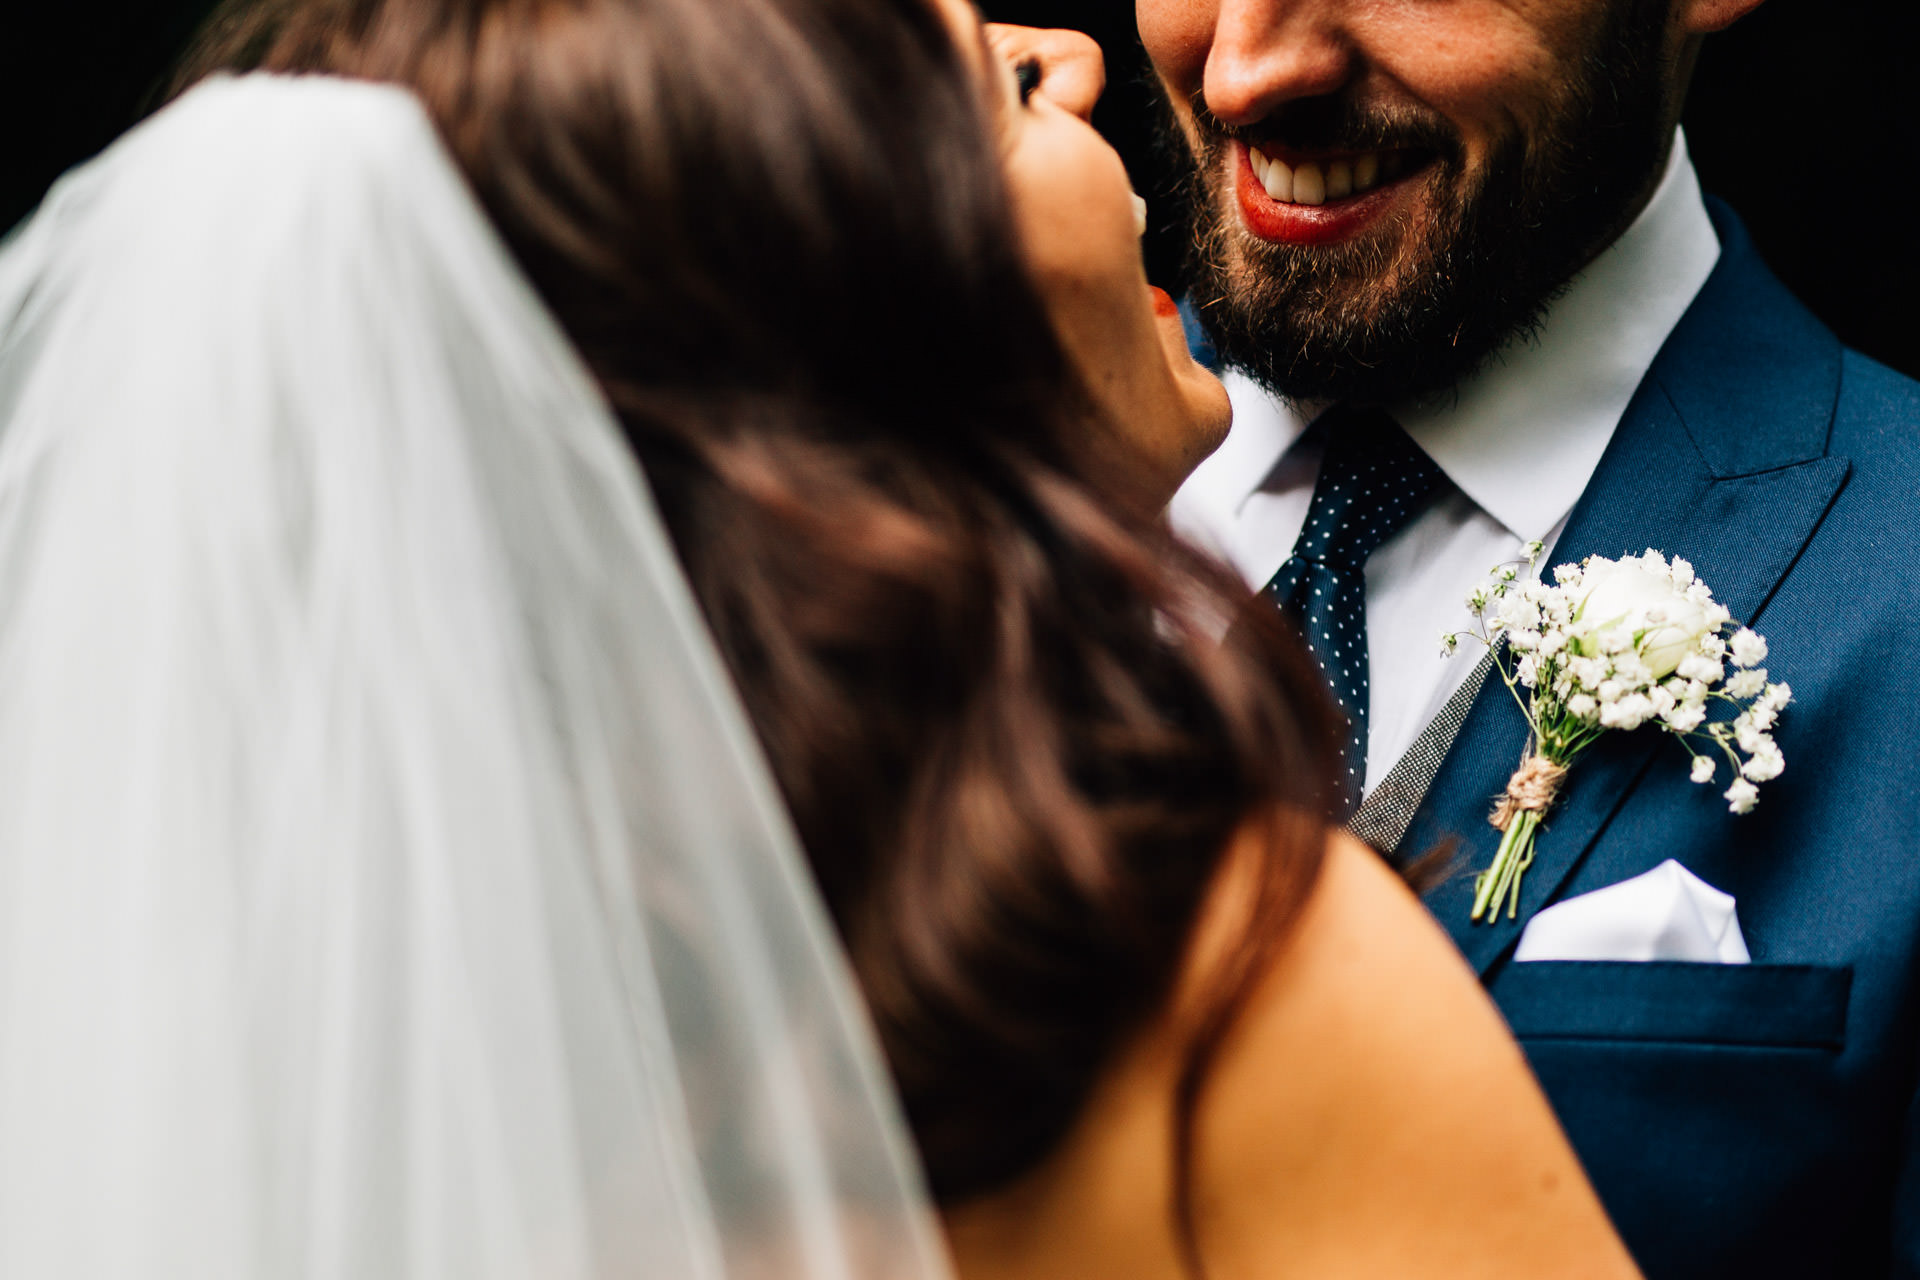 Best wedding photography 2016 - close up of bride and groom kissing